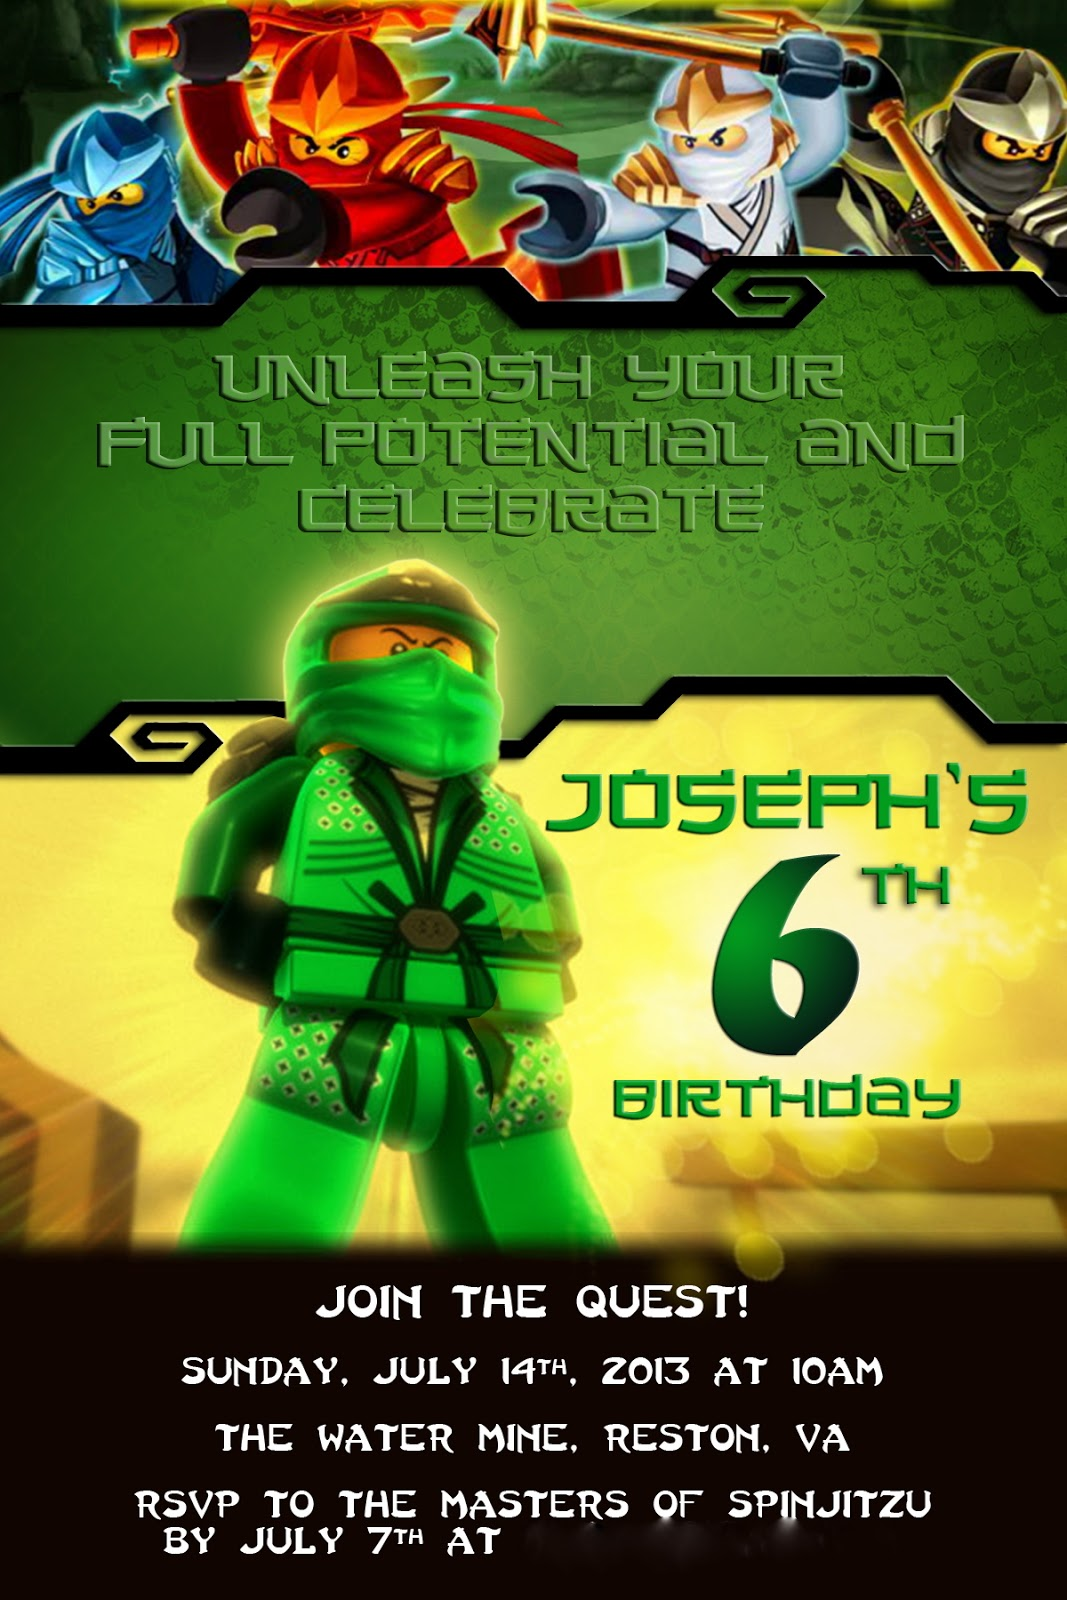 alton boys Josephs Ninjago Birthday Party – Ninjago Party Invitations